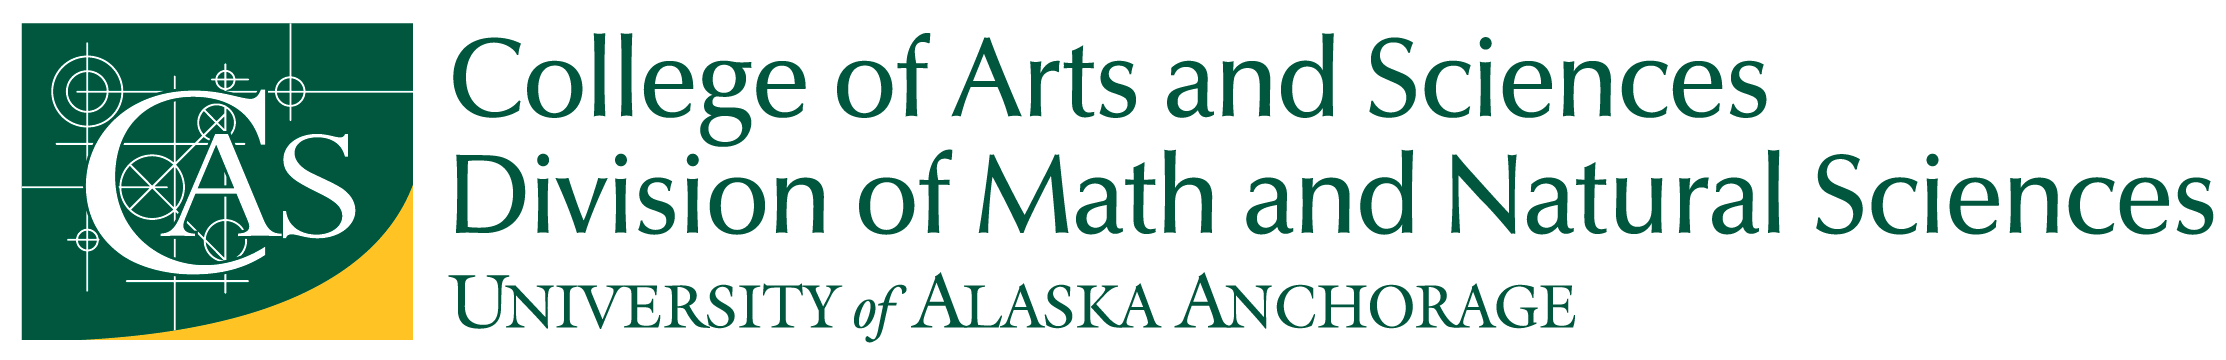 CAS College of Arts & Sciences, Division of Math and Natural Sciences, University of Alaska Anchorage